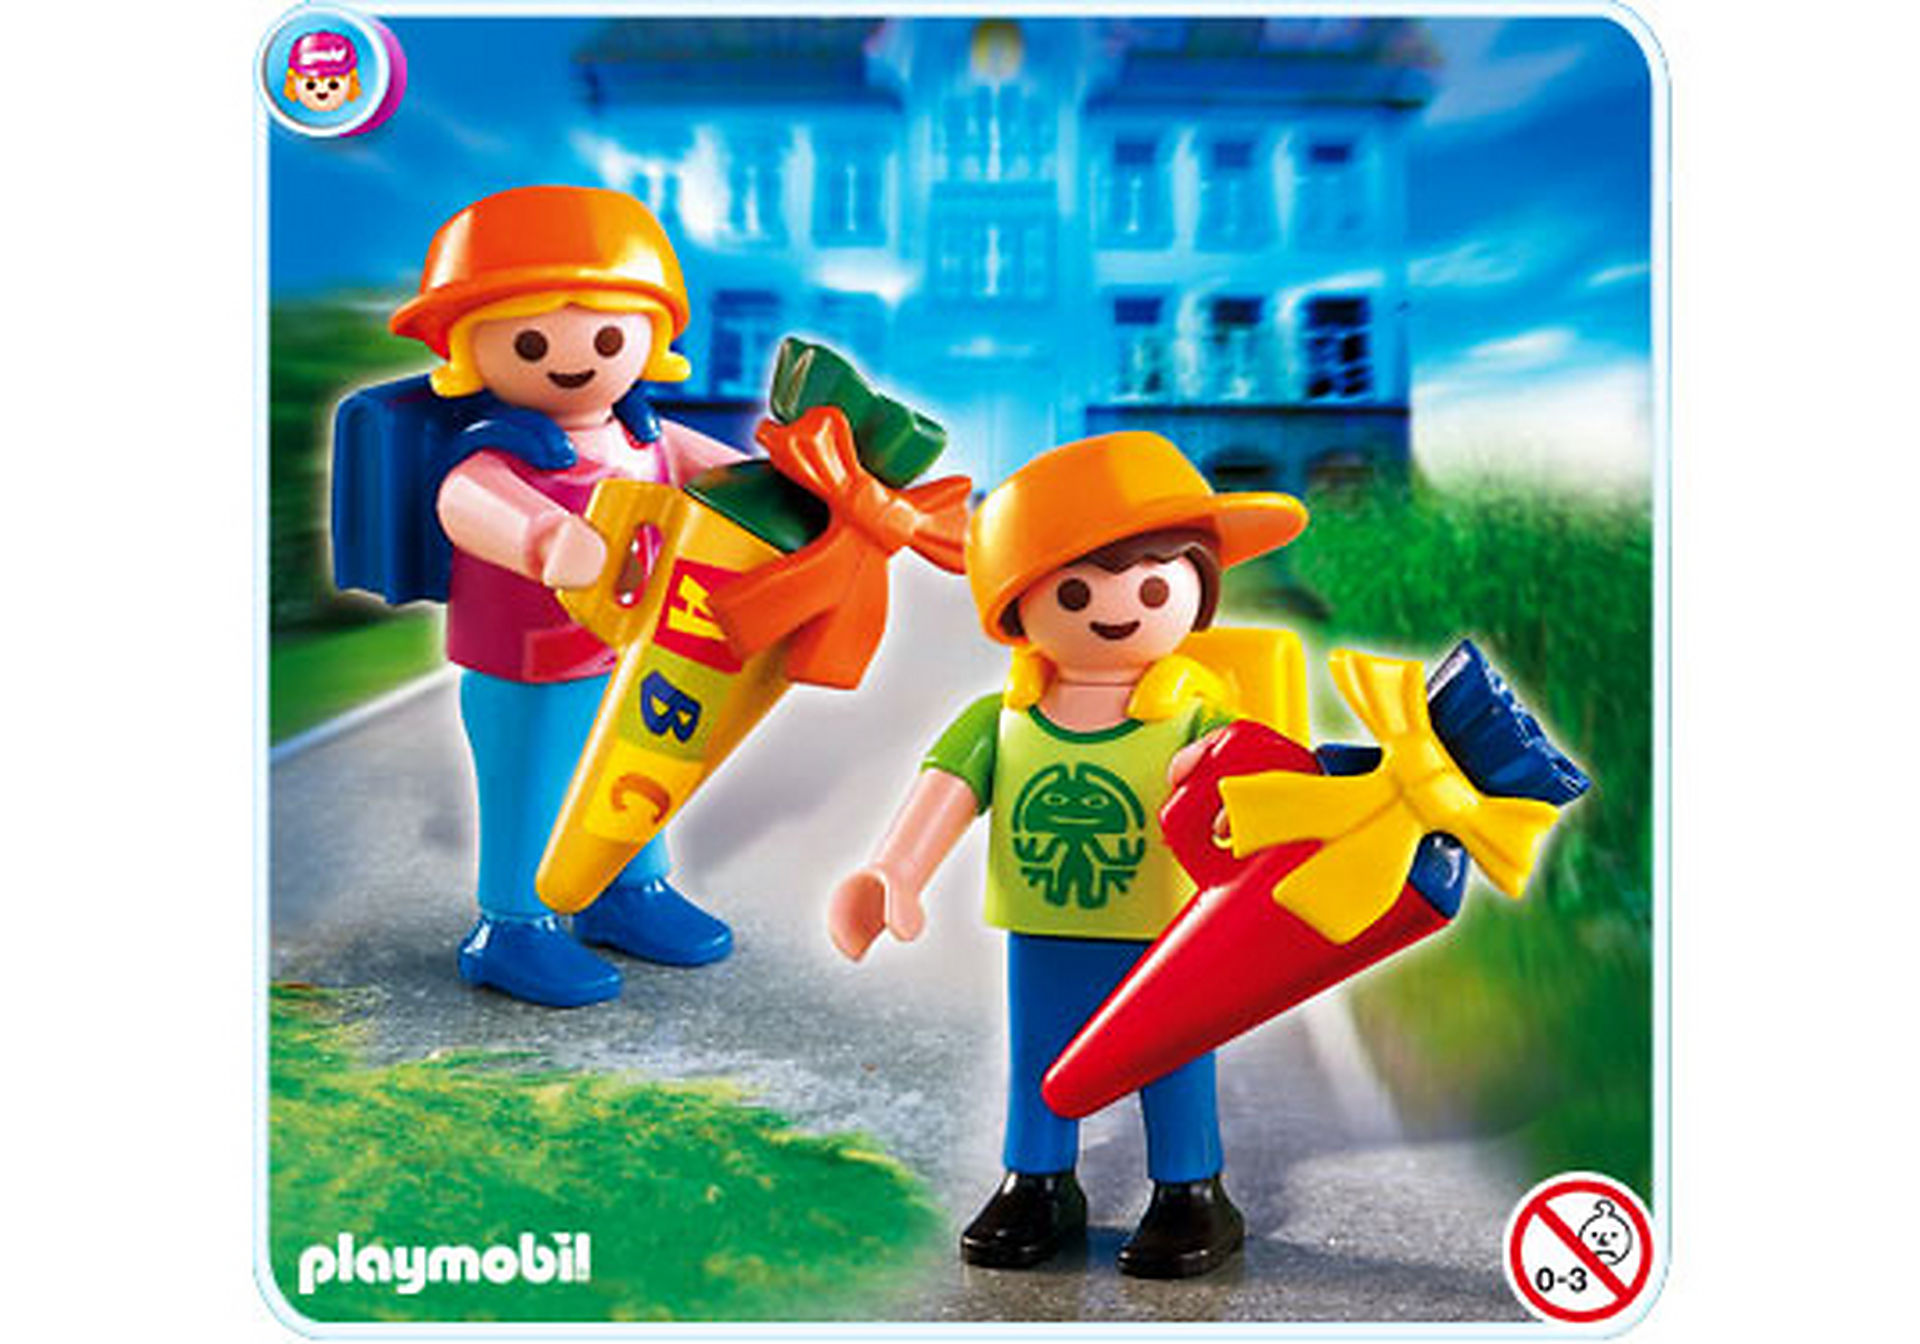 http://media.playmobil.com/i/playmobil/4686-A_product_detail/ABC-Schützen